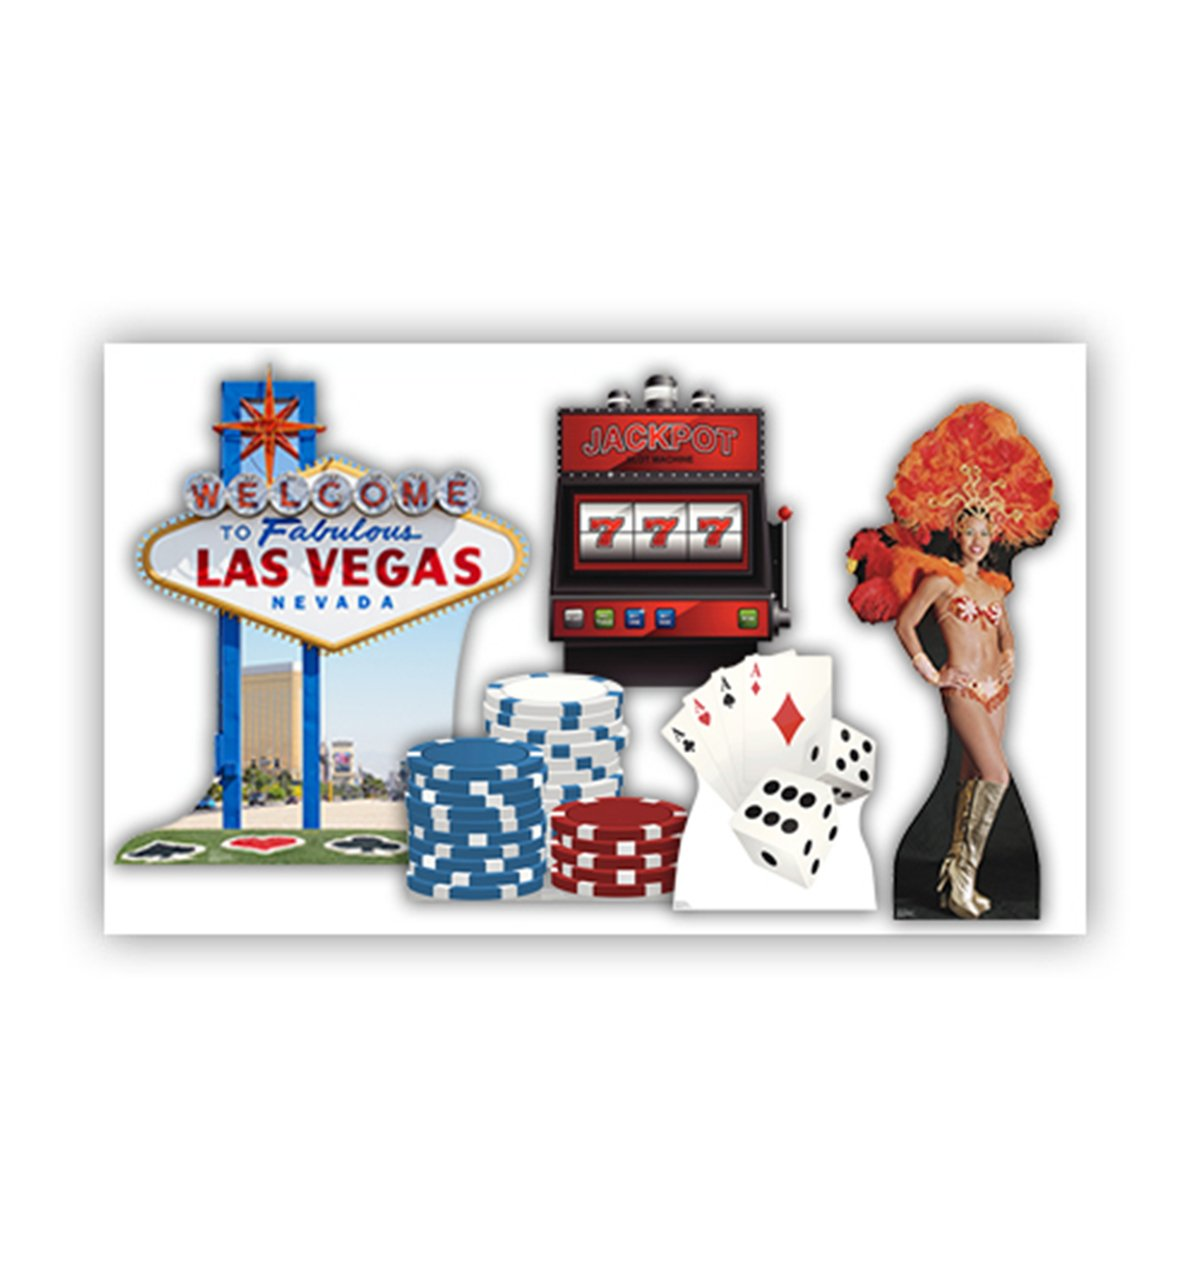 Vegas Party Themed Party Set - Advanced Graphics Life Size Cardboard Standups (Set of 5) by Advanced Graphics